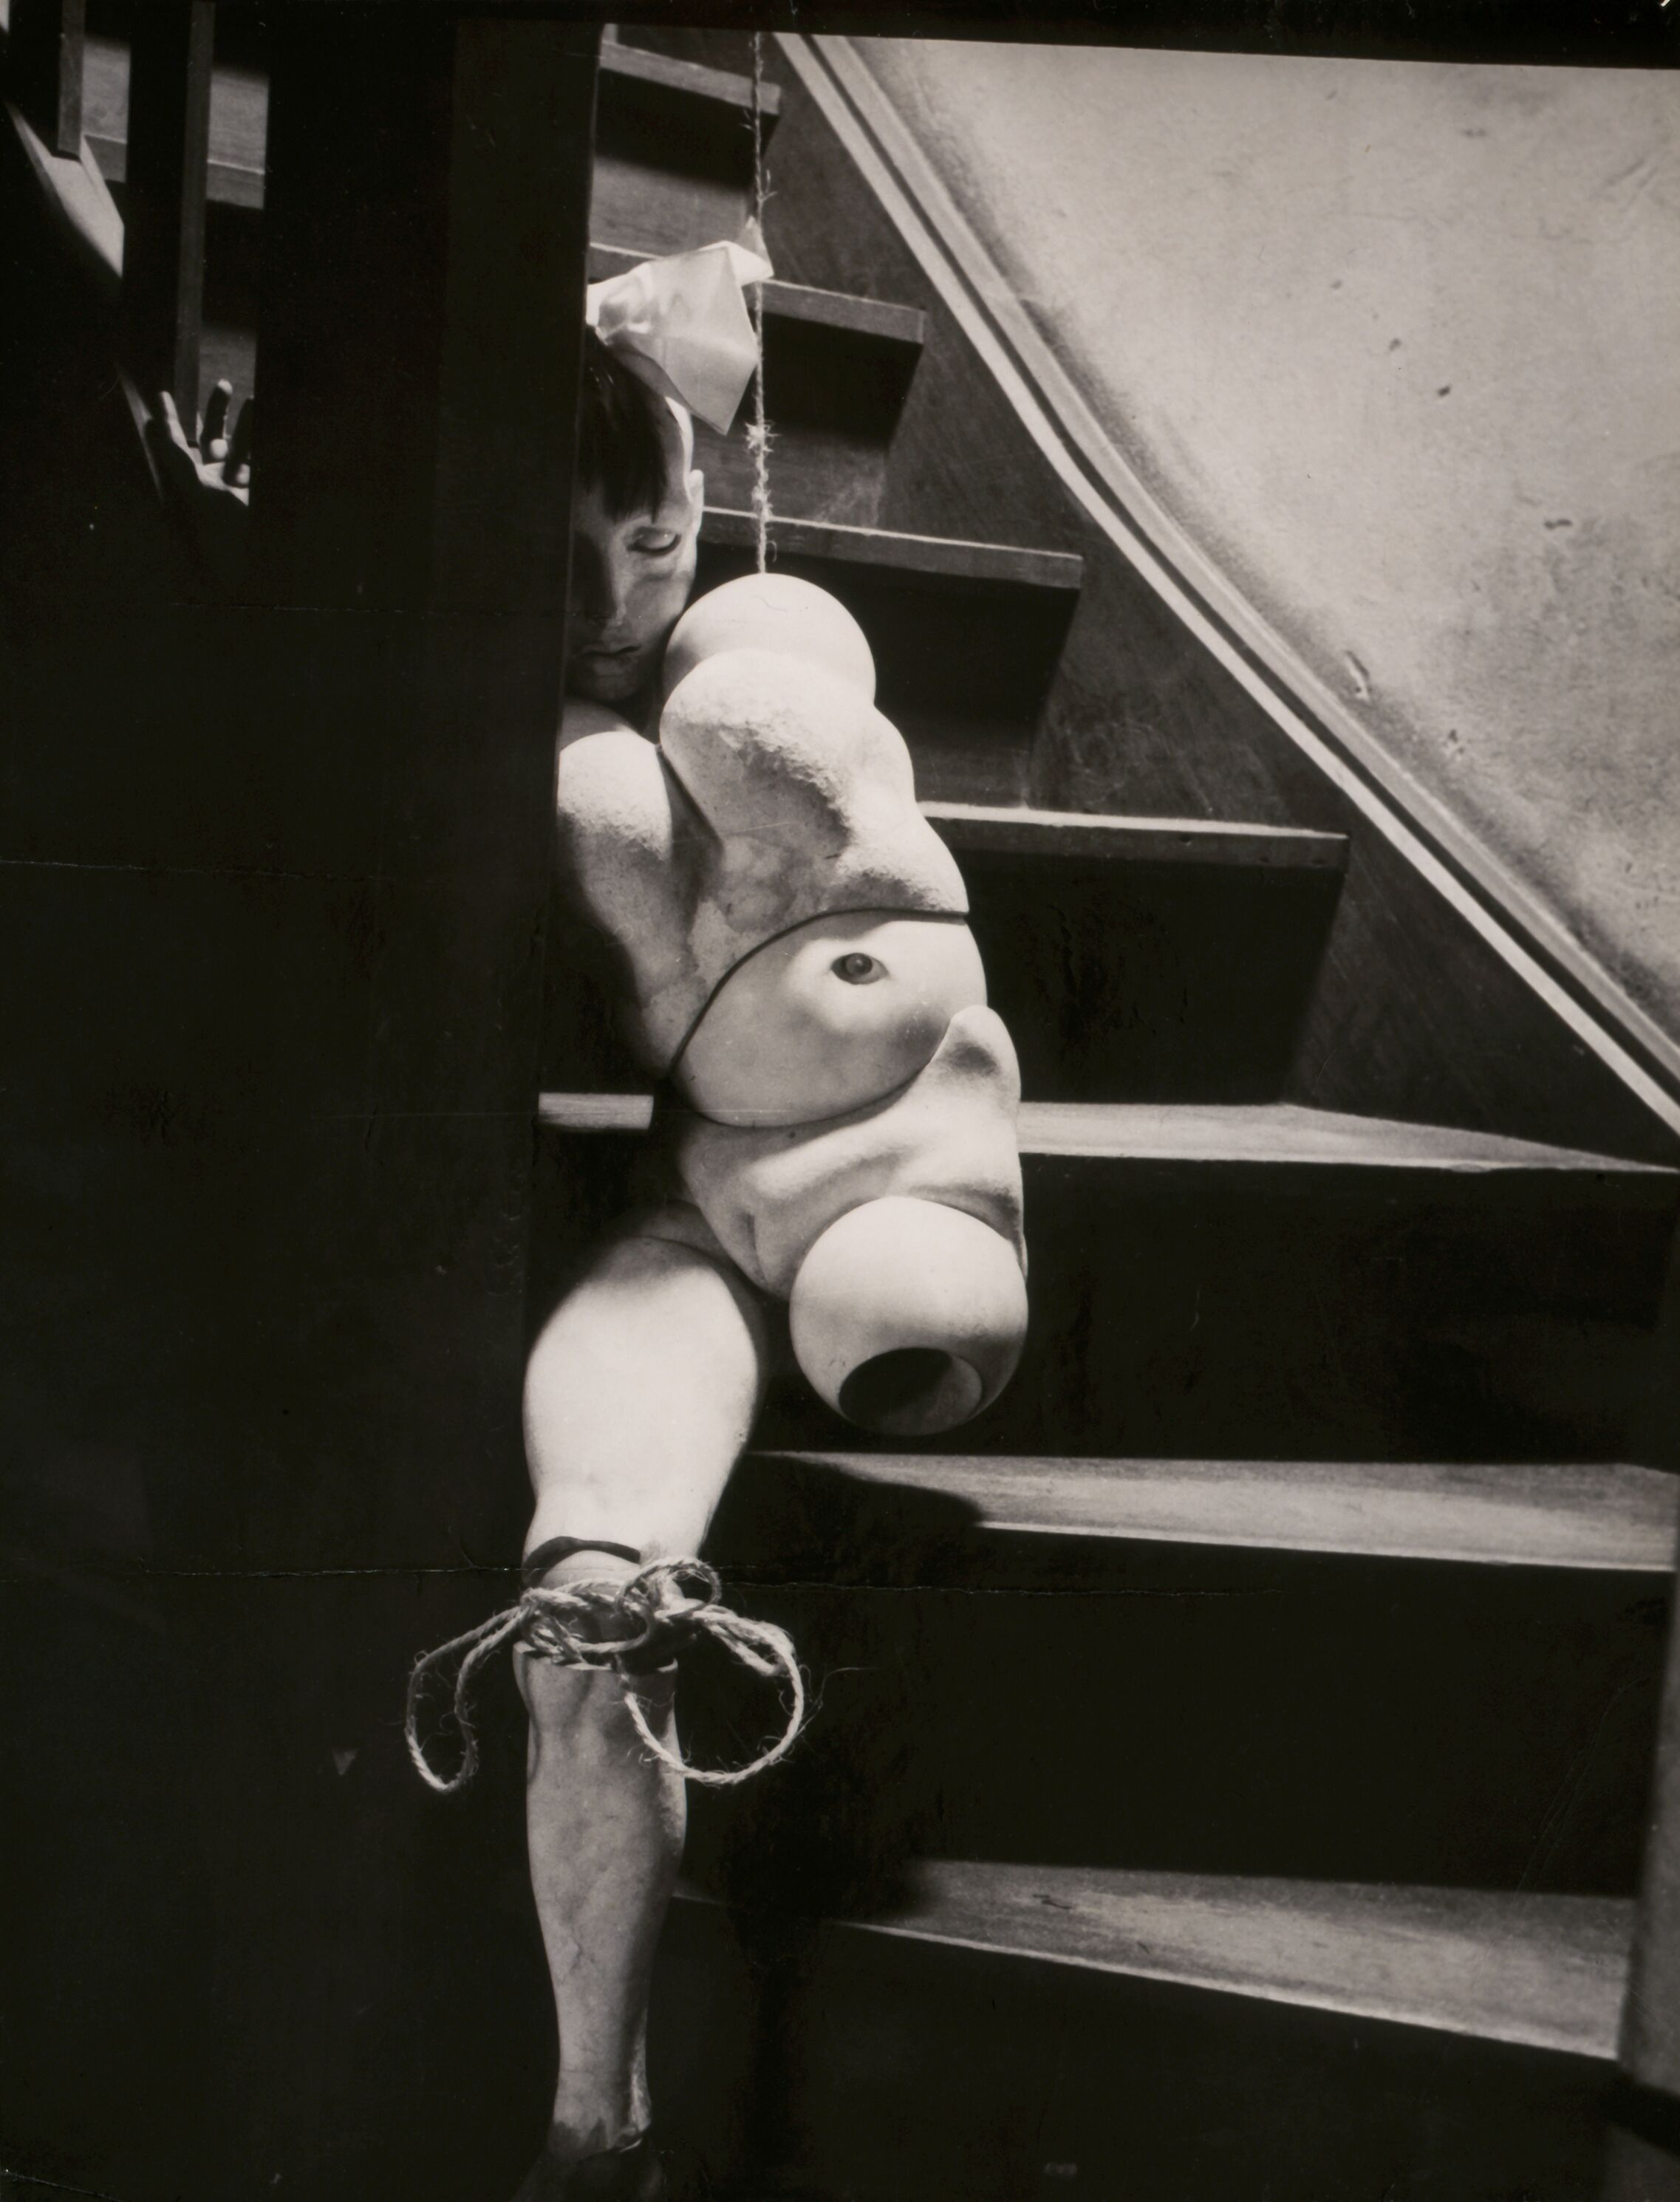 Hans Bellmer,  The Doll (La Poupée) , 1935. Gelatin silver print 18 7/8 × 14 3/8 in. Courtesy of the Menil Collection. © 2019 Artists Rights Society (ARS), New York / ADAGP, Paris.